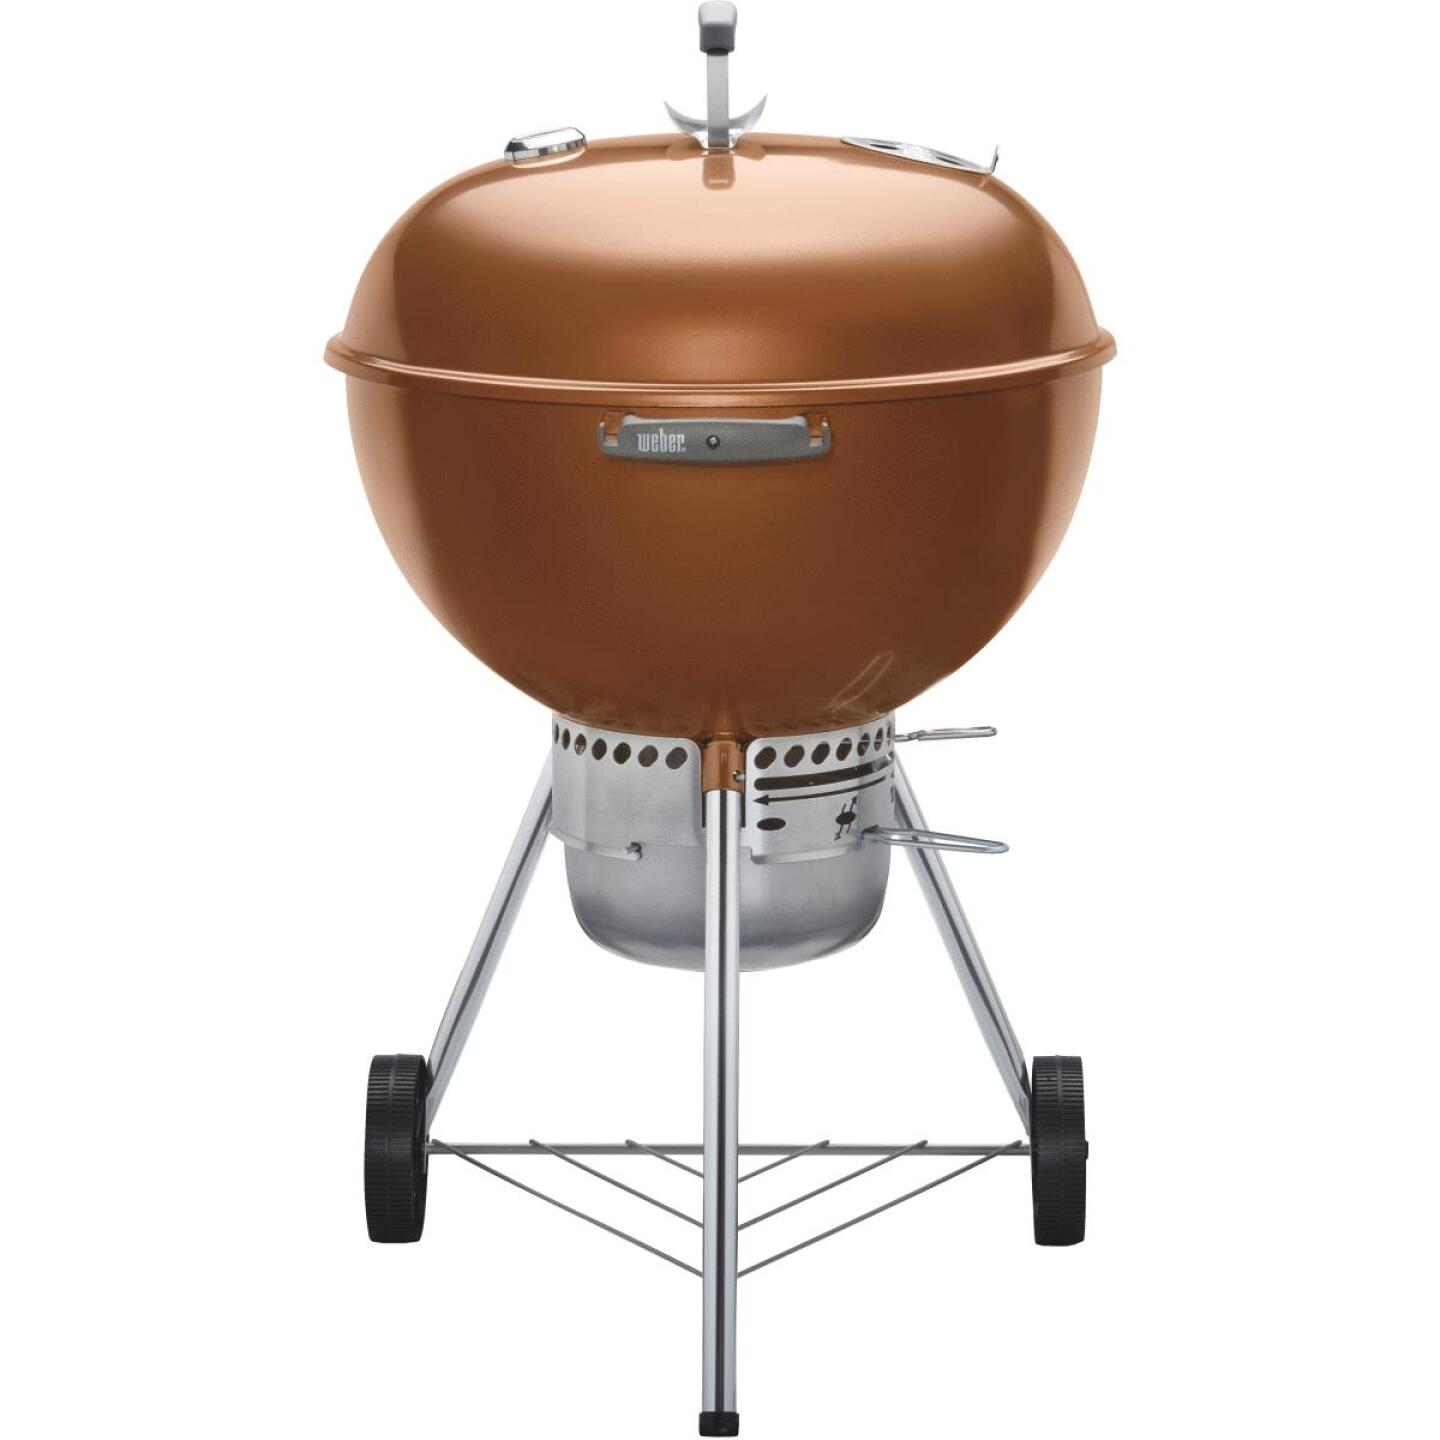 Weber Original Kettle 22 In. Dia. Copper Premium Charcoal Grill Image 5